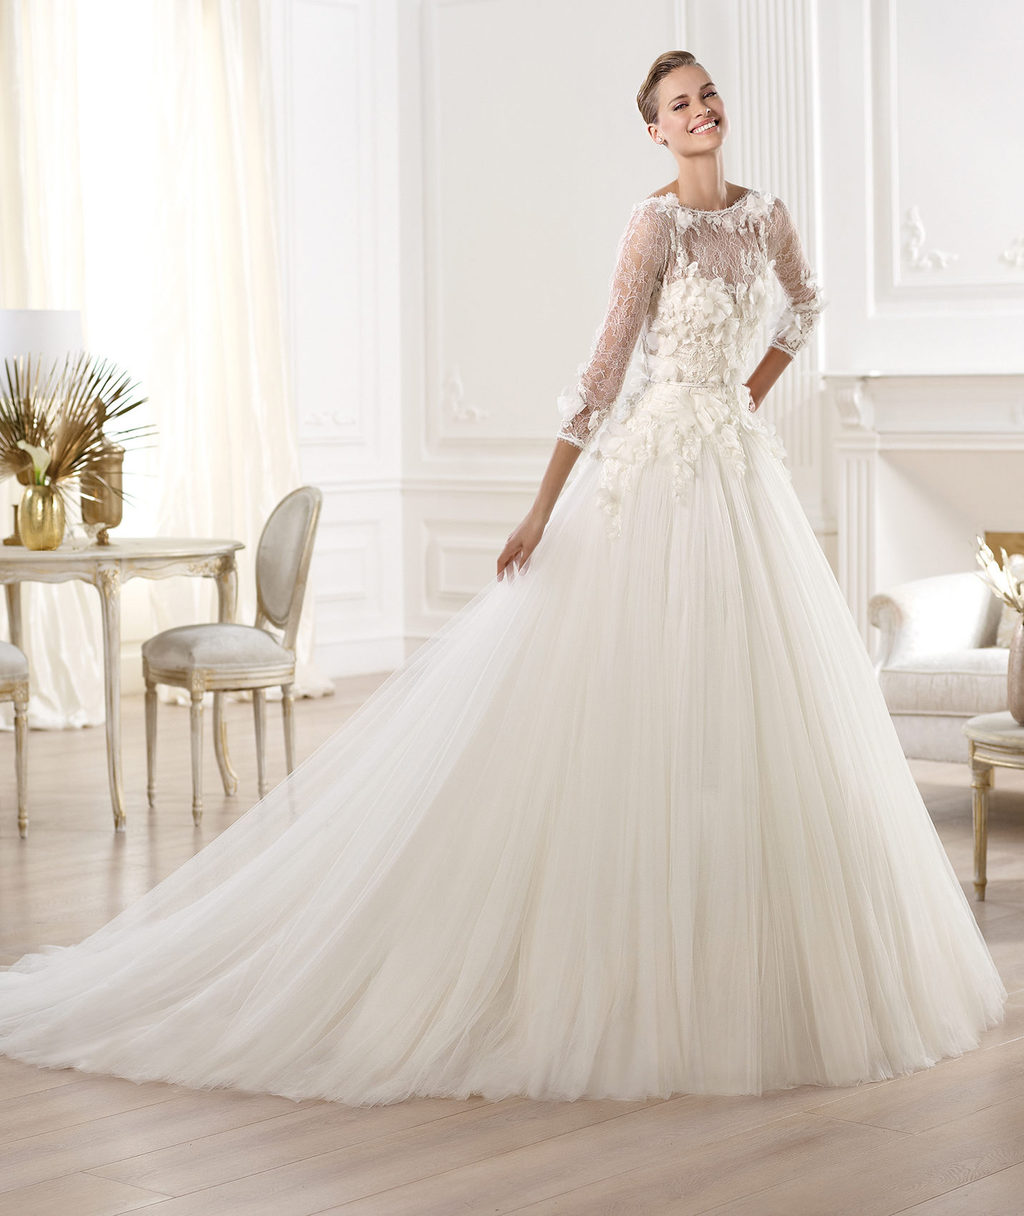 Elie Saab Wedding Dress 2014 Pronovias Bridal Lacerta  OneWed.com